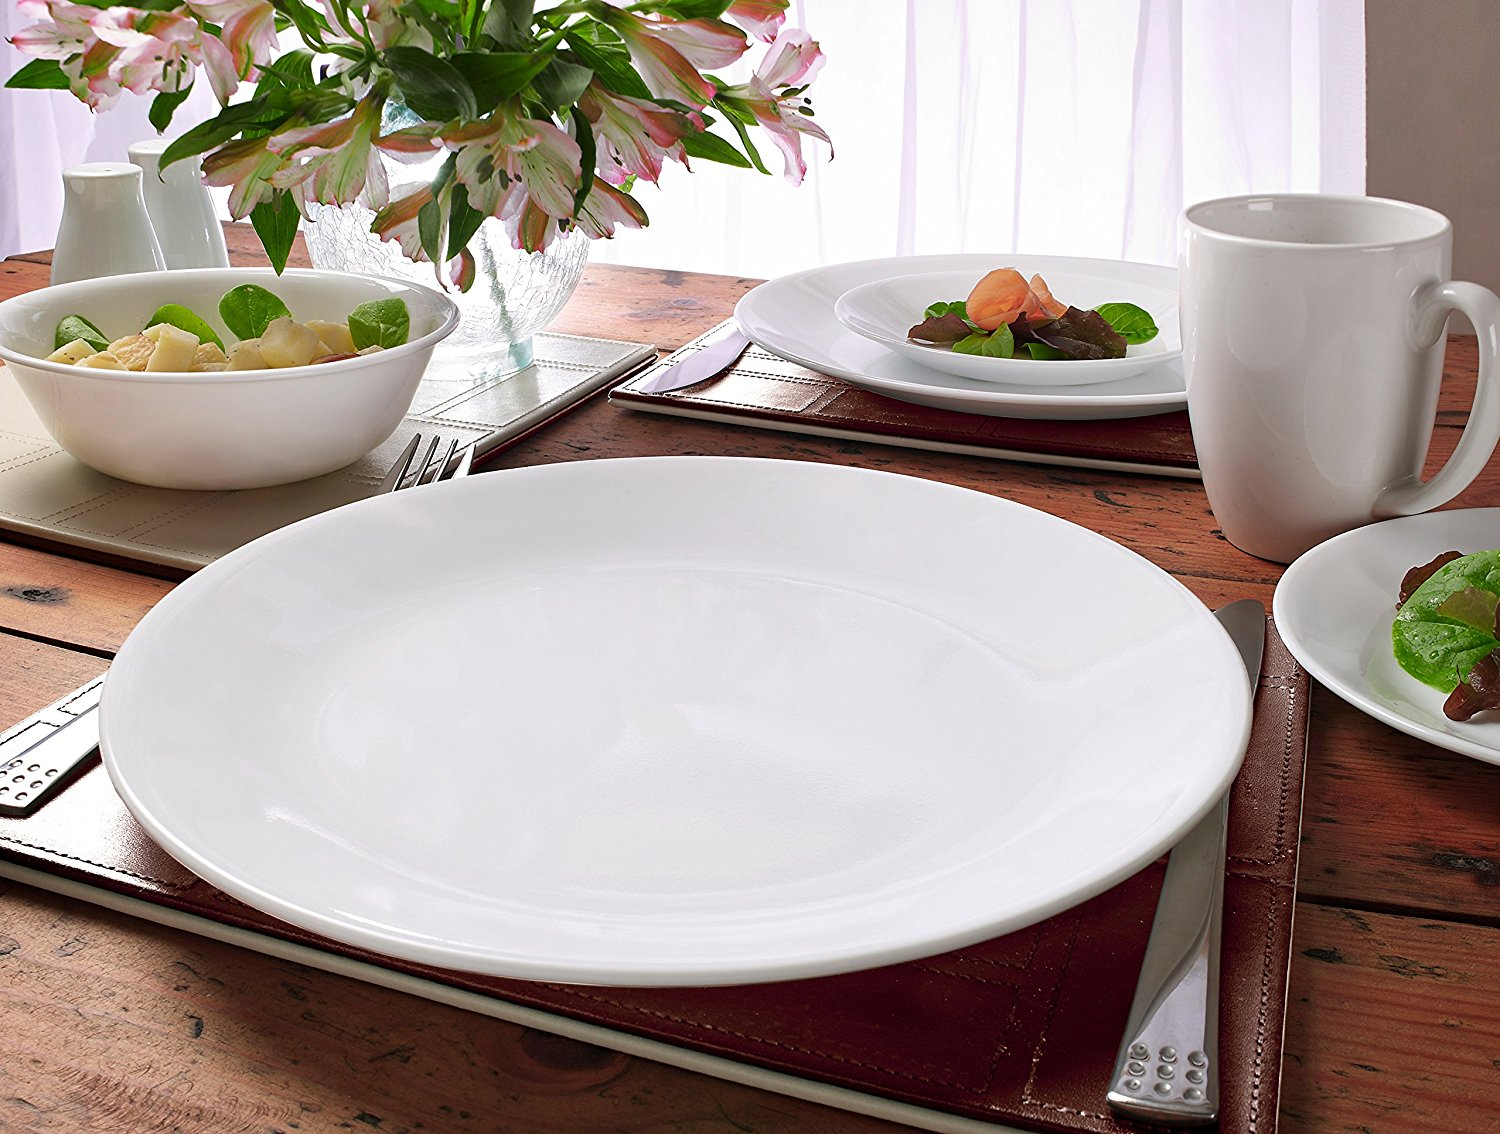 Corelle Livingware 6-Piece Dinner Plate Set Winter Frost White Only $11.99 SHIPPED! : corelle dinner plates only - pezcame.com